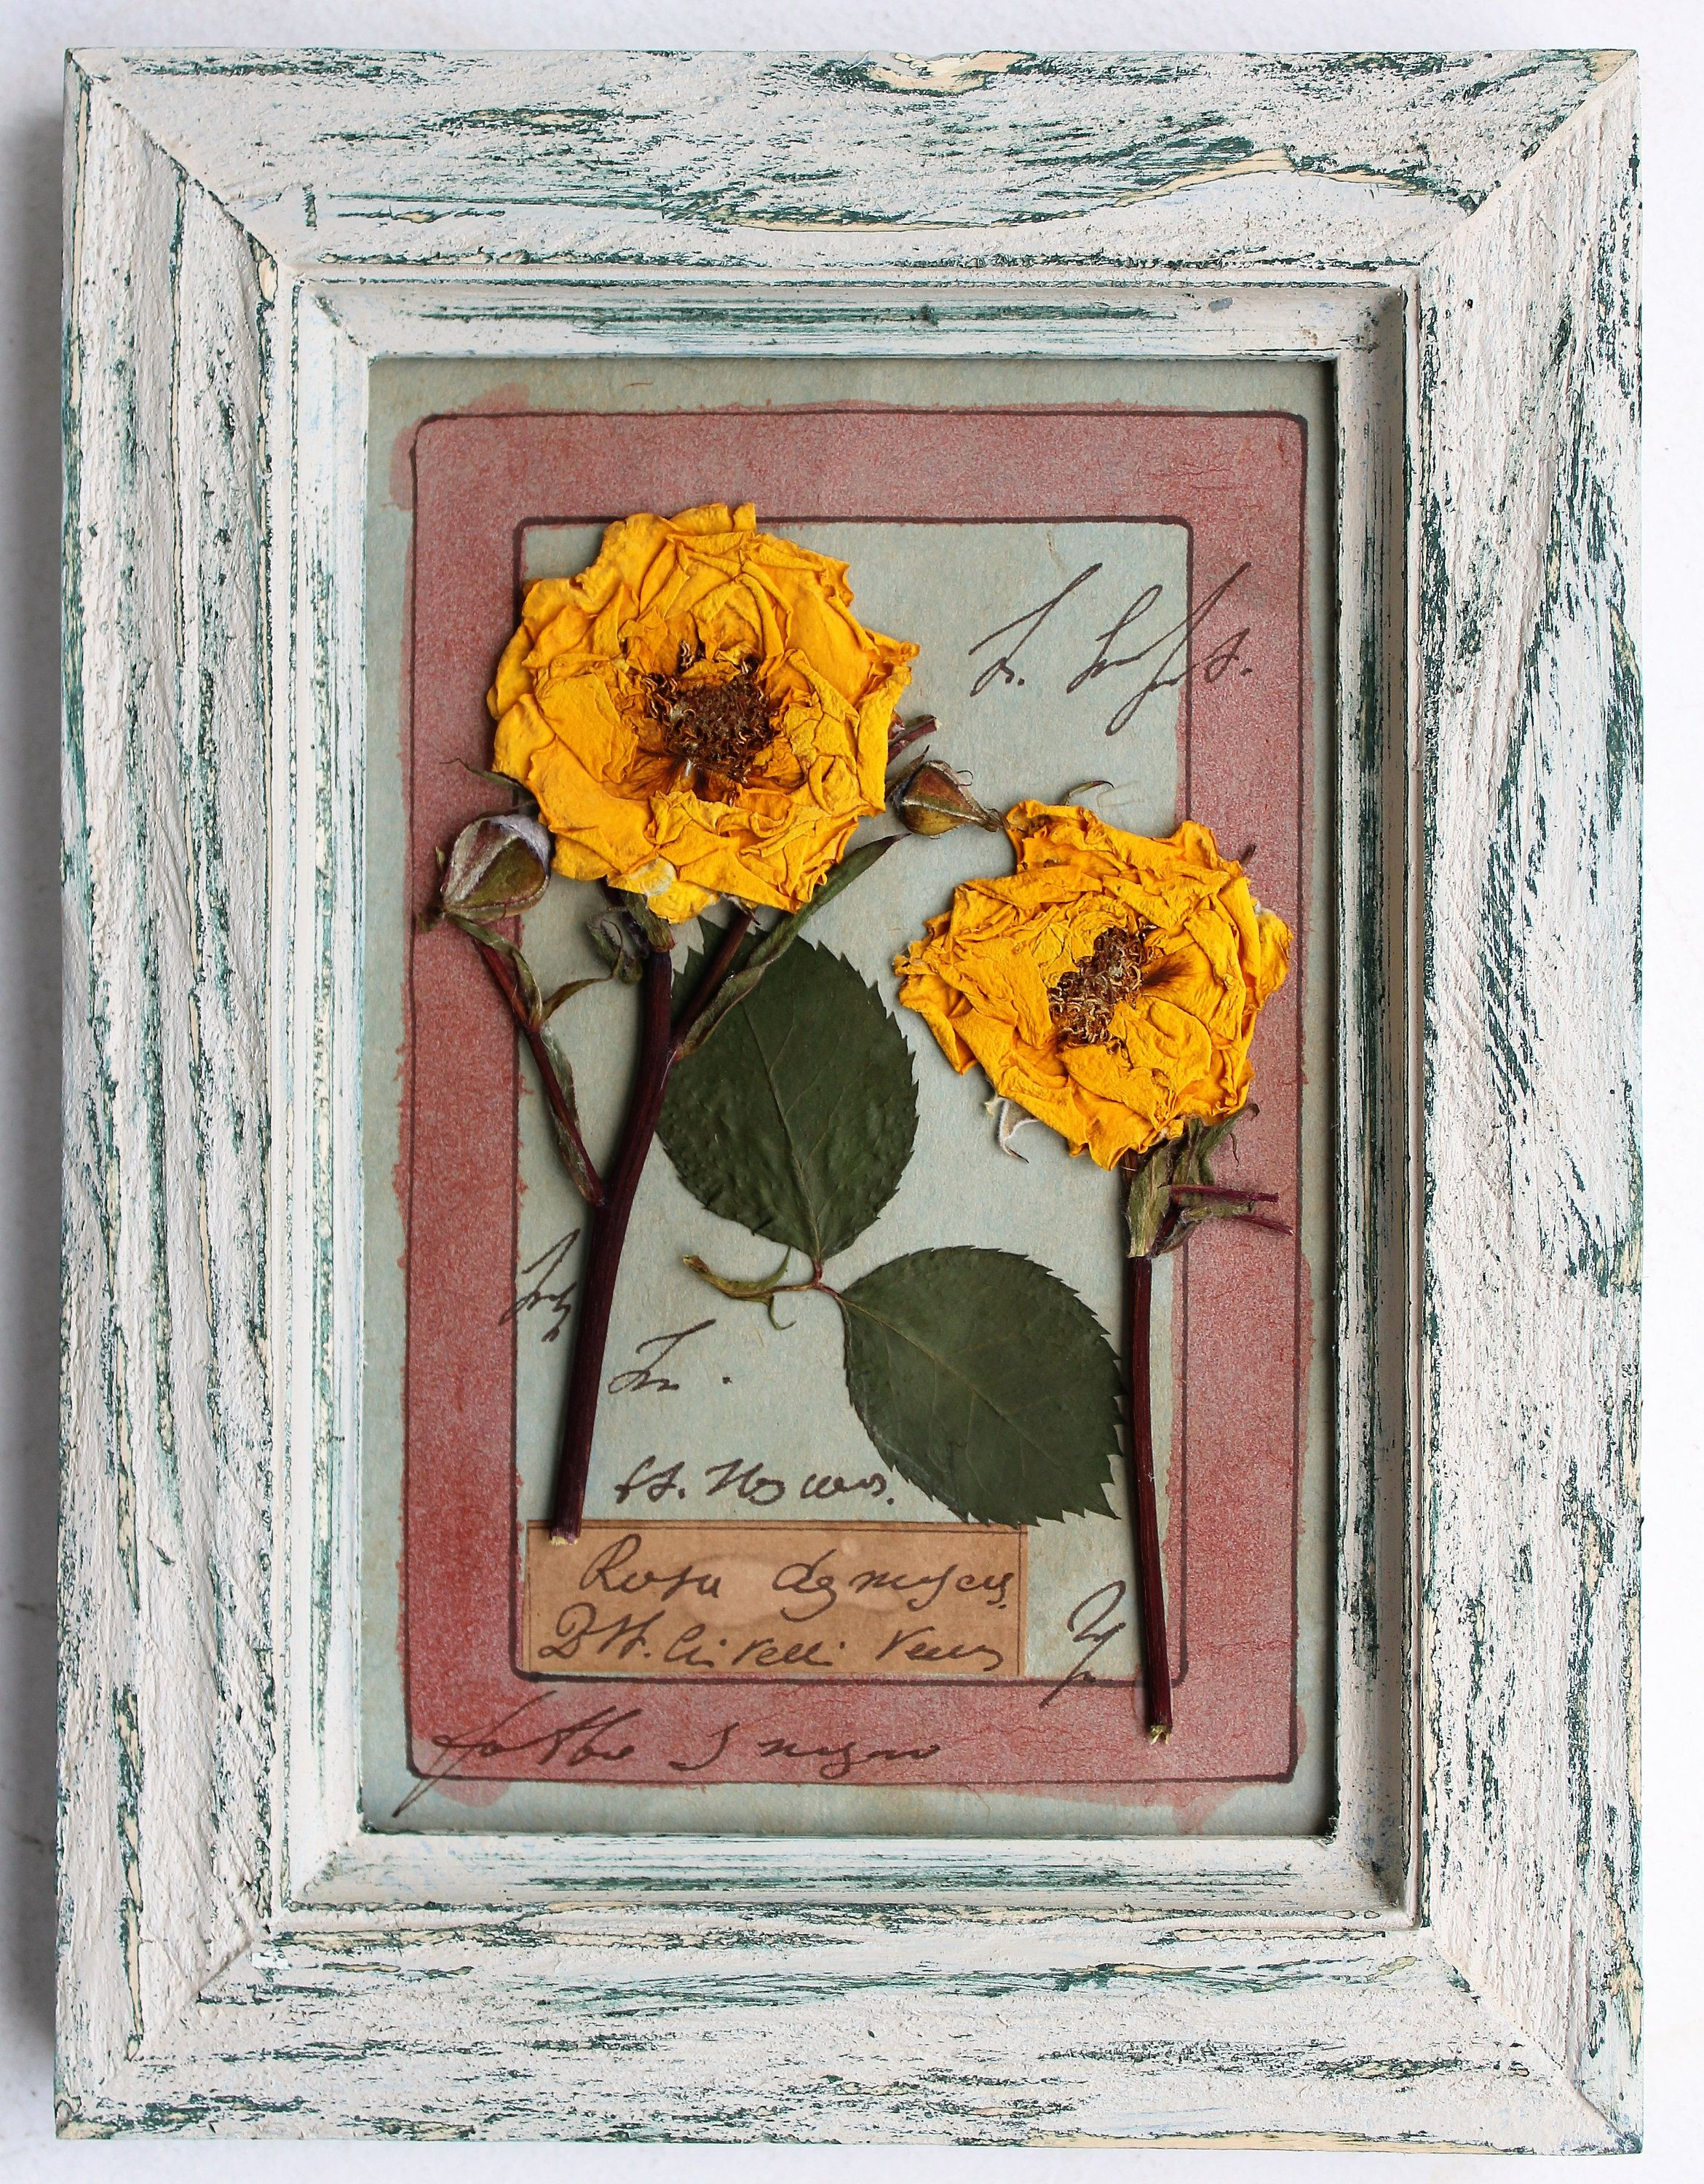 Flores Prensadas Enmarcadas 8 X 6 Pulgadas 20 5 X 15 5 With Images Rustic Framed Art Pressed Flower Art Pressed Flower Crafts